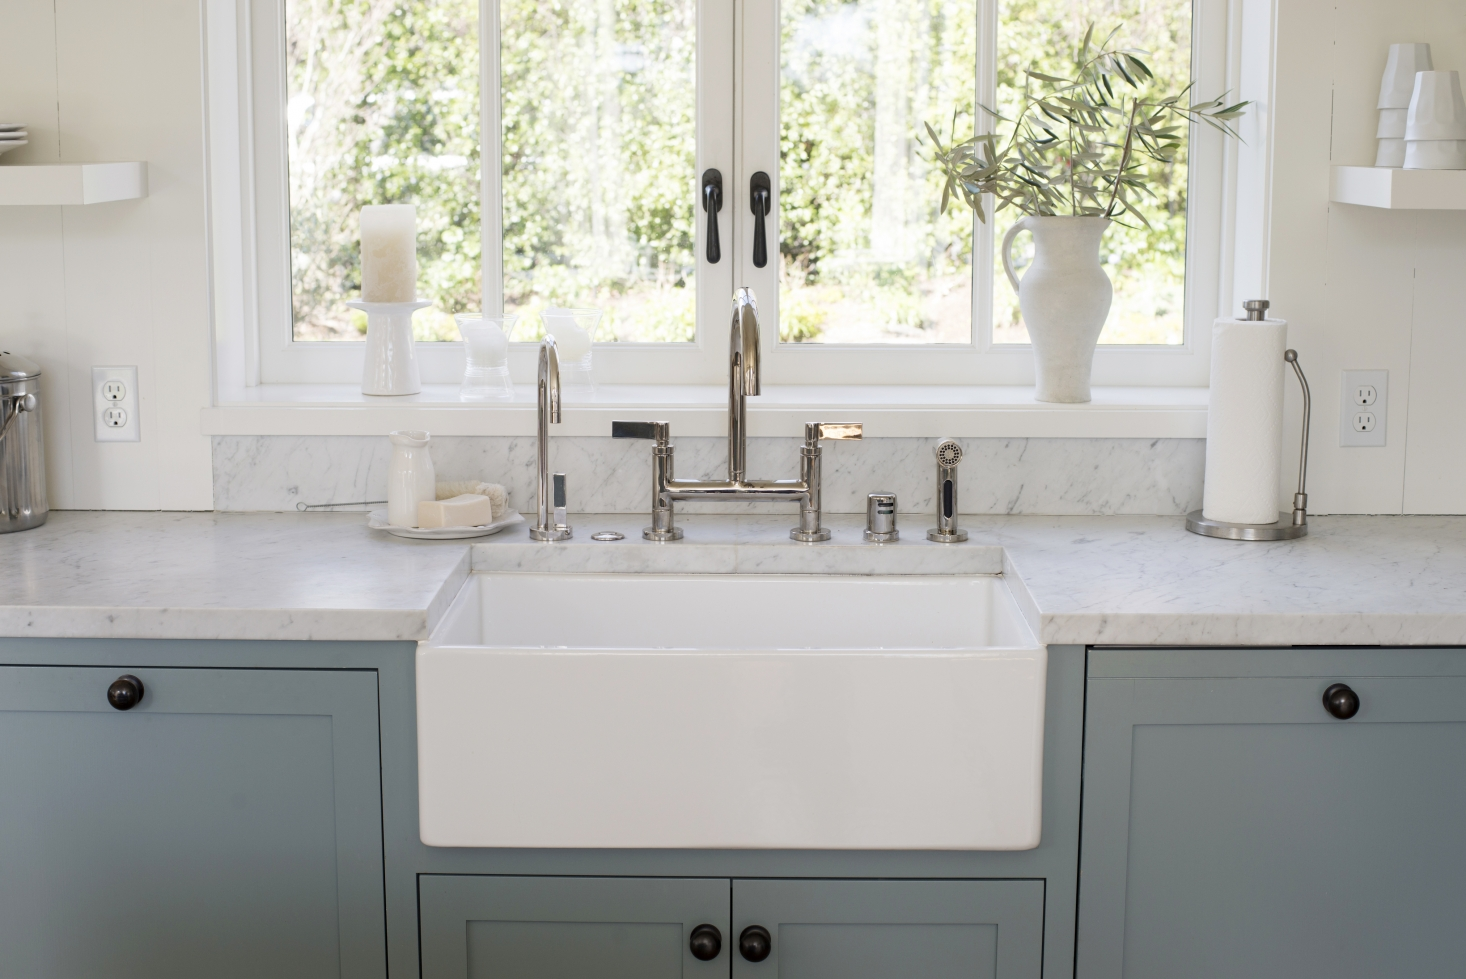 Under-Sink Water Filters: Are They Worth It?